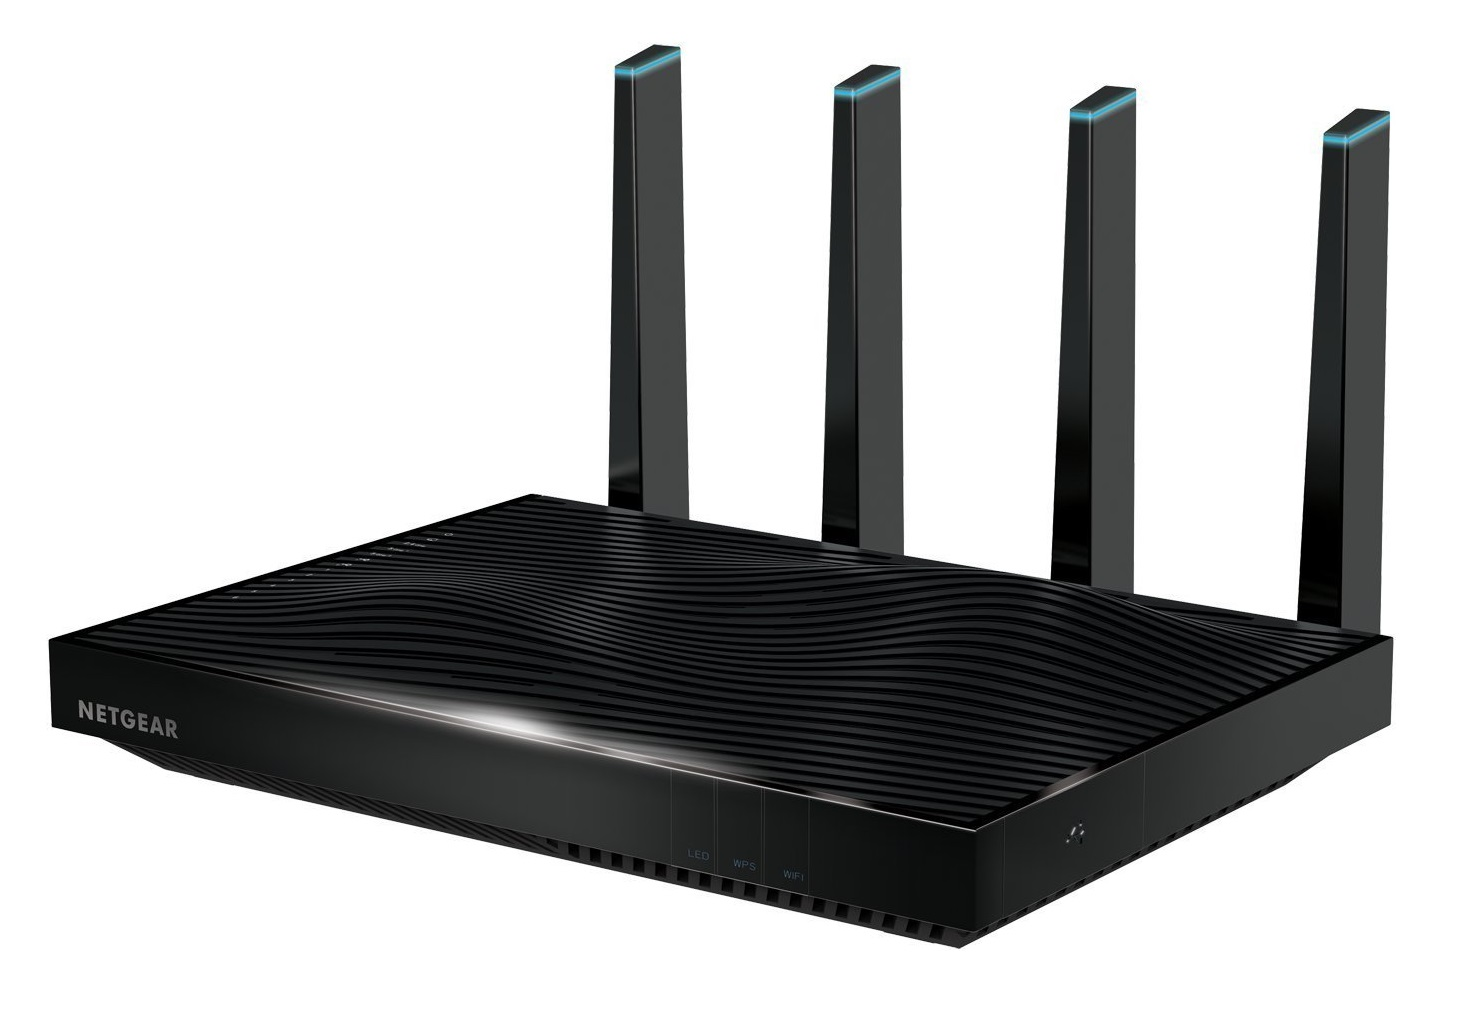 NETGEAR 7PT AC5300 SMART WIFI ROUTER, R8500